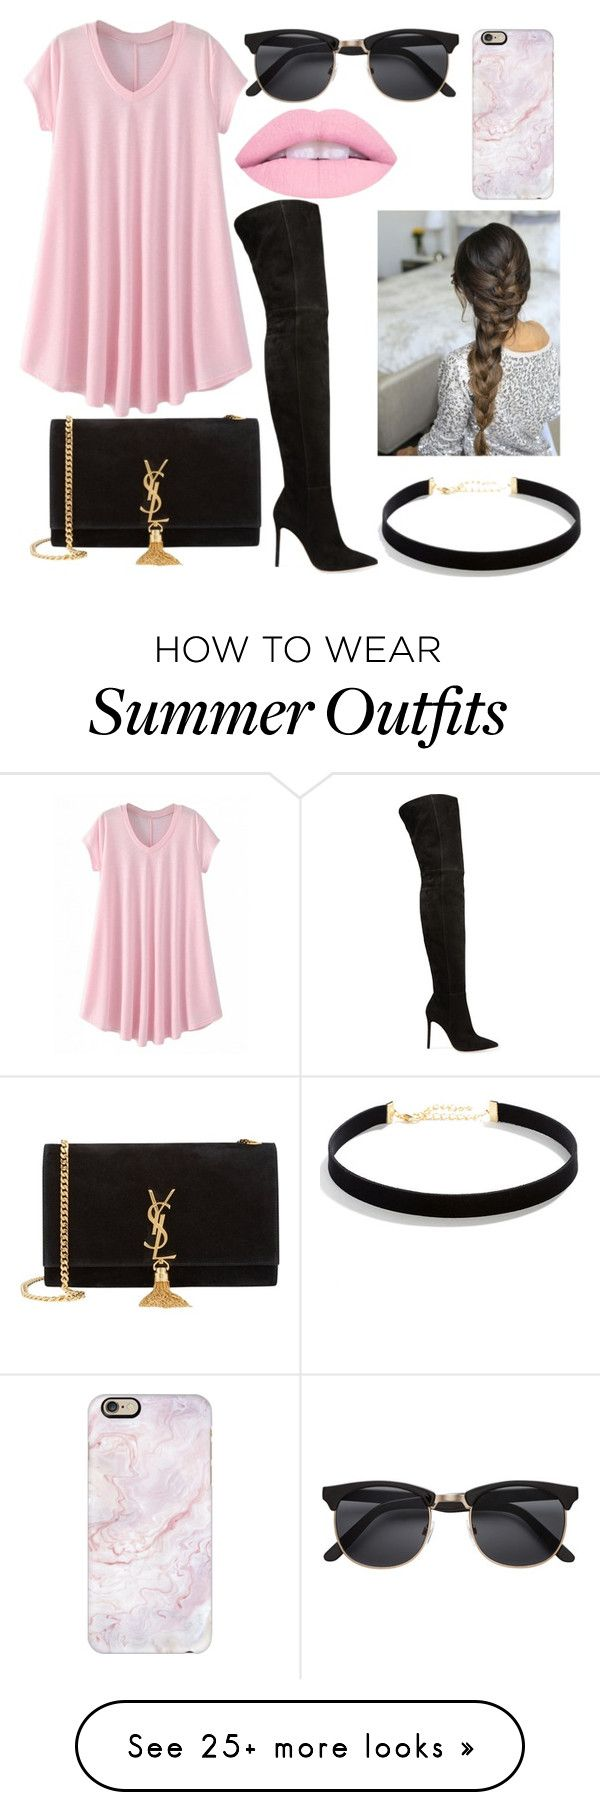 """""""Pink day outfit """" by baby-x-kate on Polyvore featuring Gianvito Rossi..."""